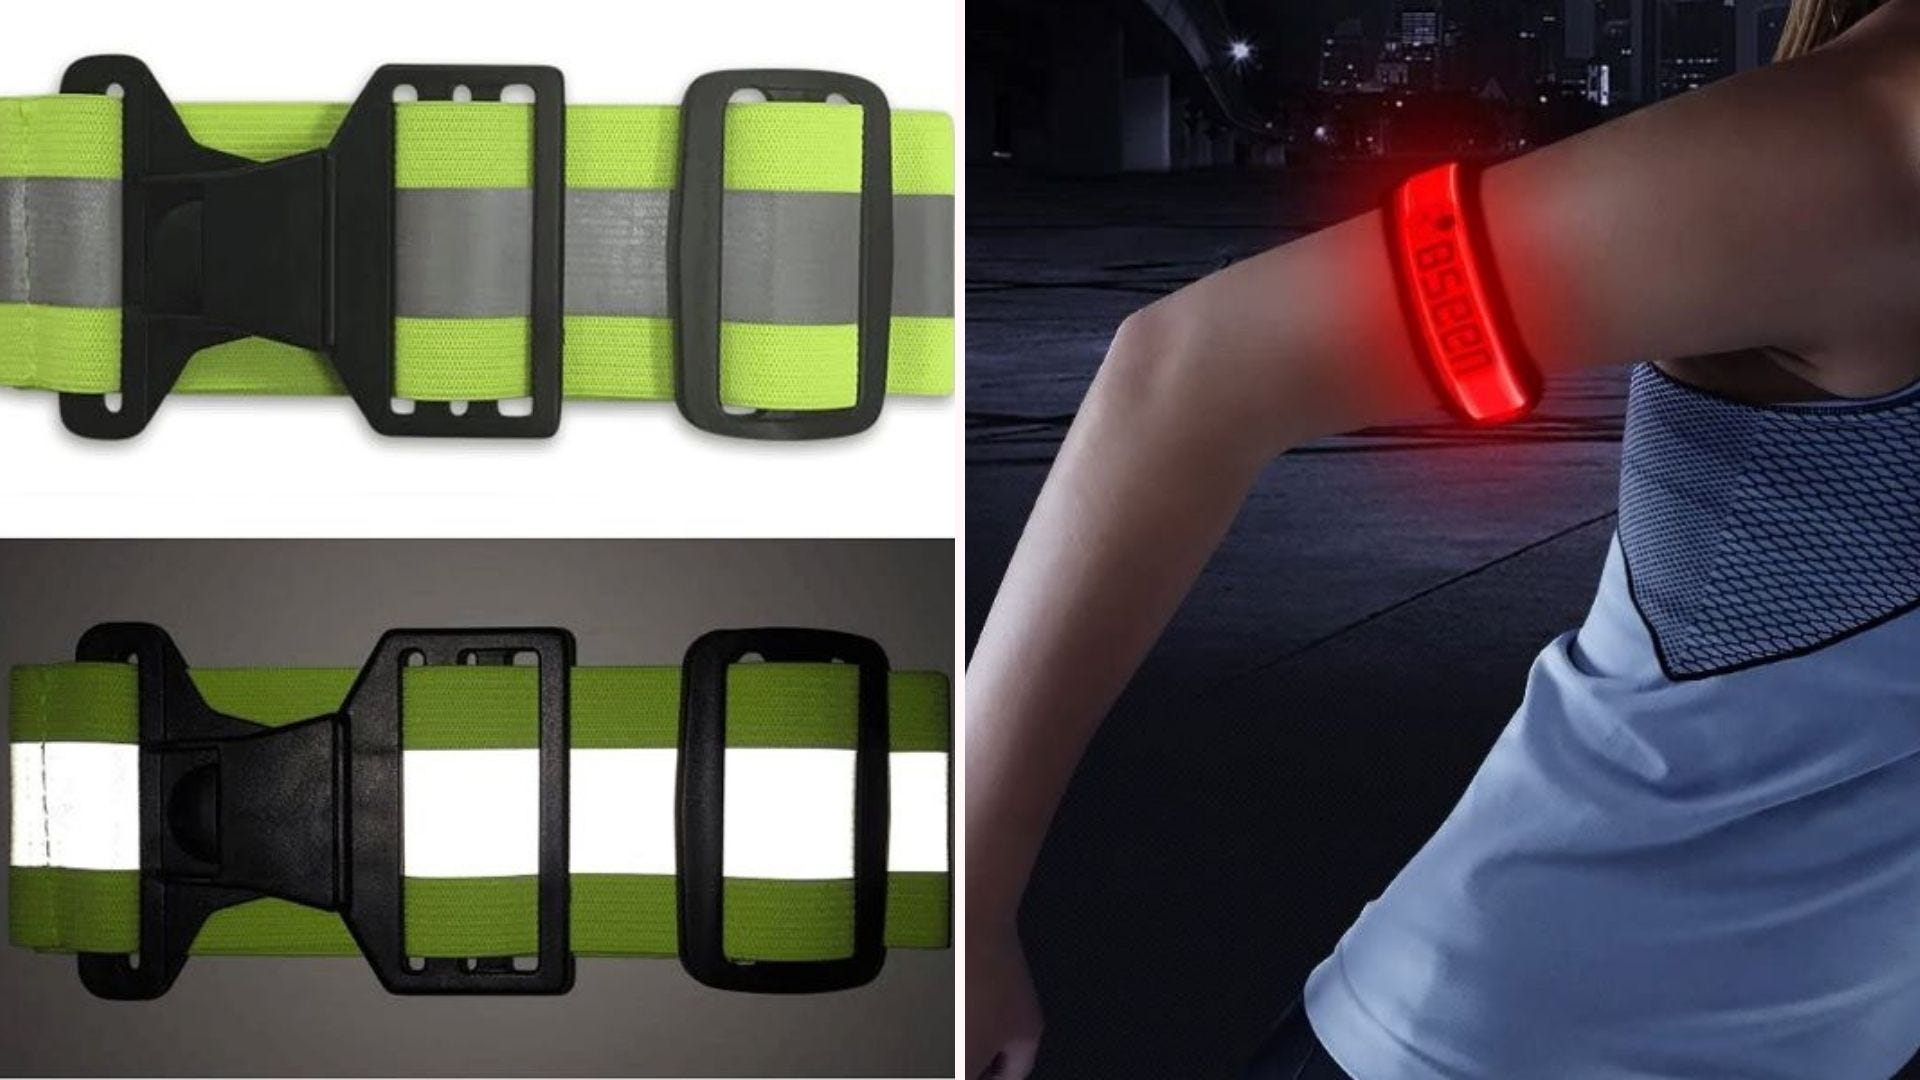 The Salty Lance Glow Belt and a woman wearing a red BSEEN LED armband.